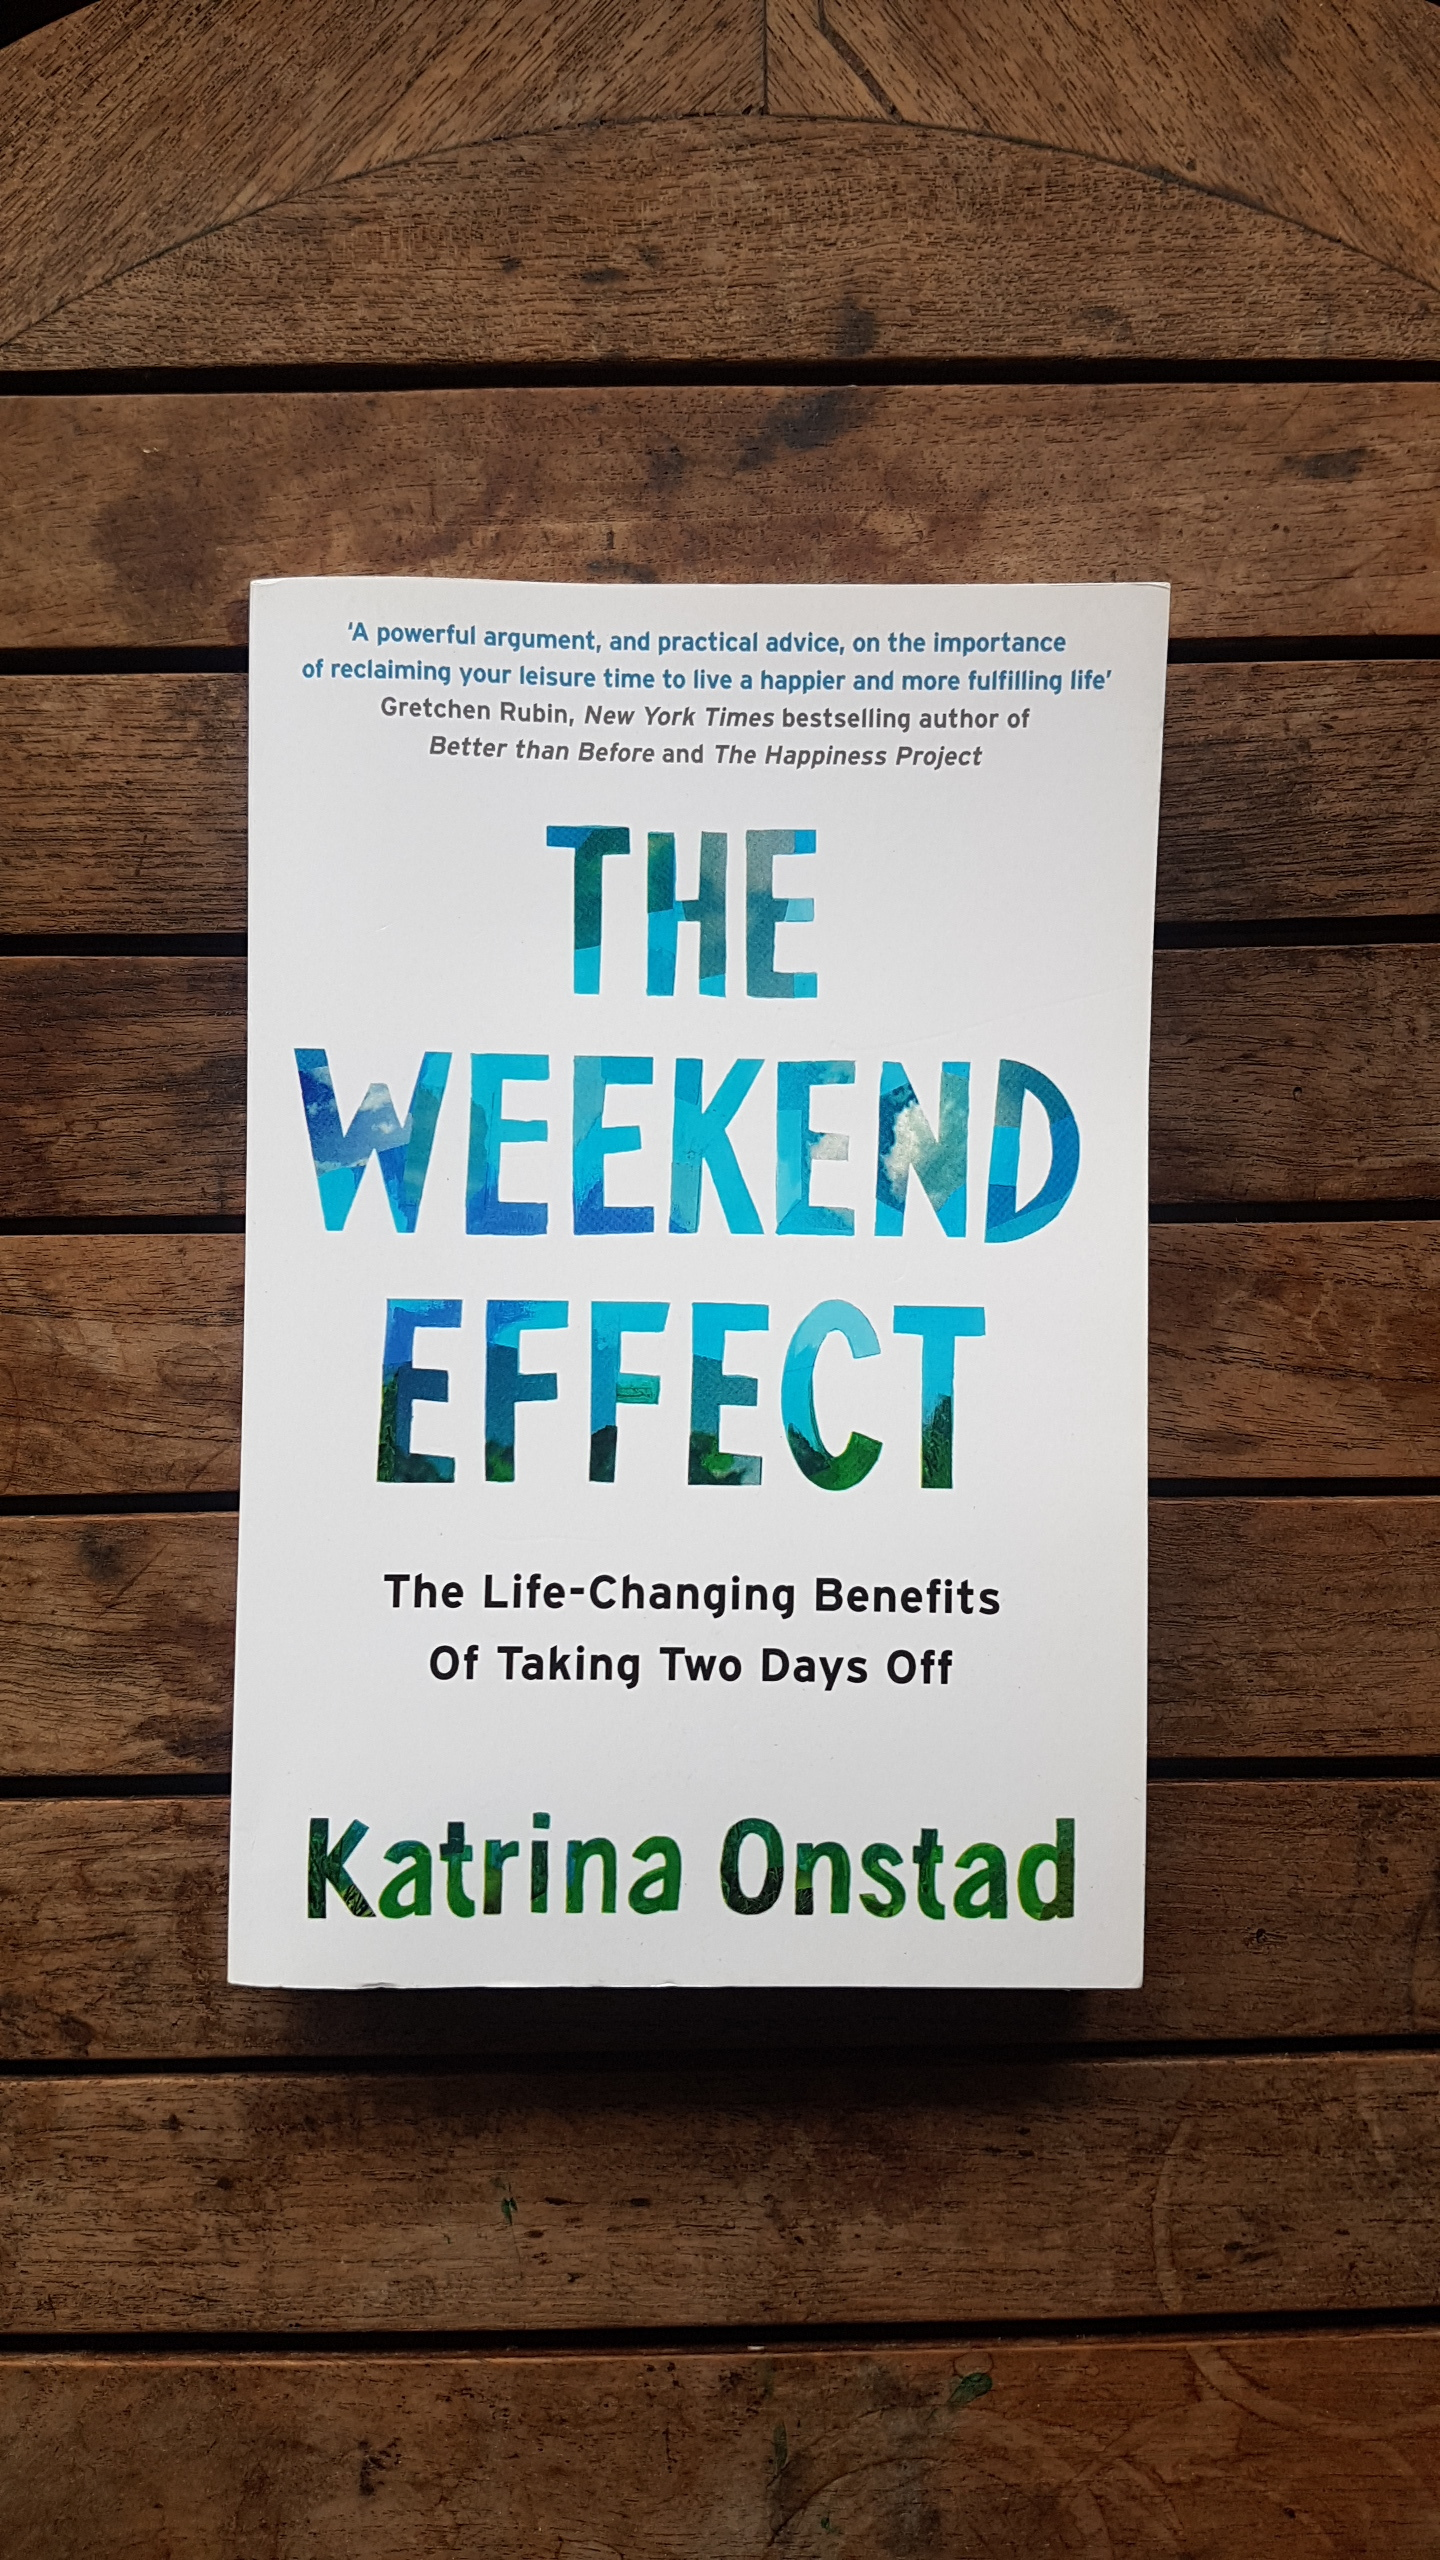 The Weekend Effect: The Life-Changing Benefits of Taking Time Off and Challenging the Cult of Overwork   by Katrina Onstad